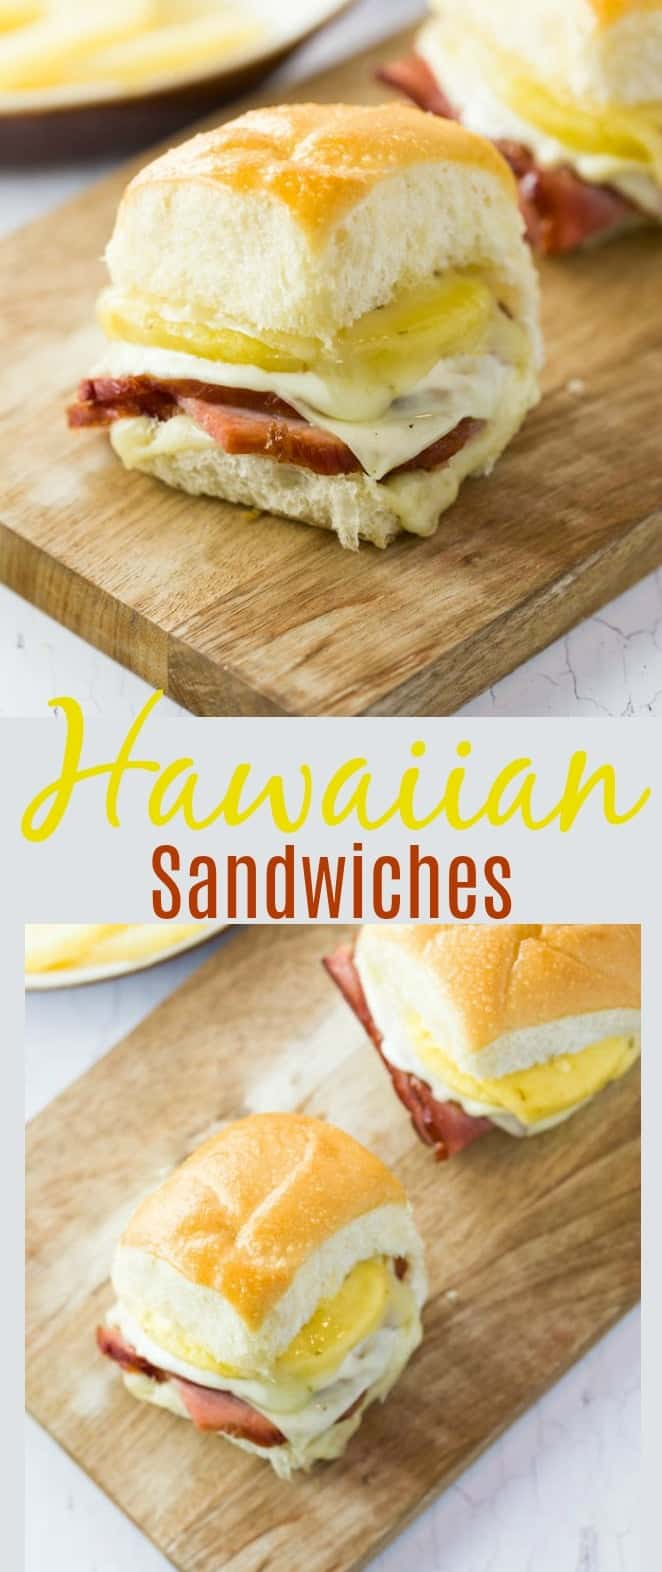 These Hawaiian sandwiches feature freshly baked rolls that are that are filled with savory ham, sweet pineapple, and layers of melted cheese. The rolls are baked in the oven and brushed with melted butter and a sprinkling of salt.  #Sandwiches #Hawaiian #Ham #Pineapple #Sliders #Lunch #Kids #SummerRecipes